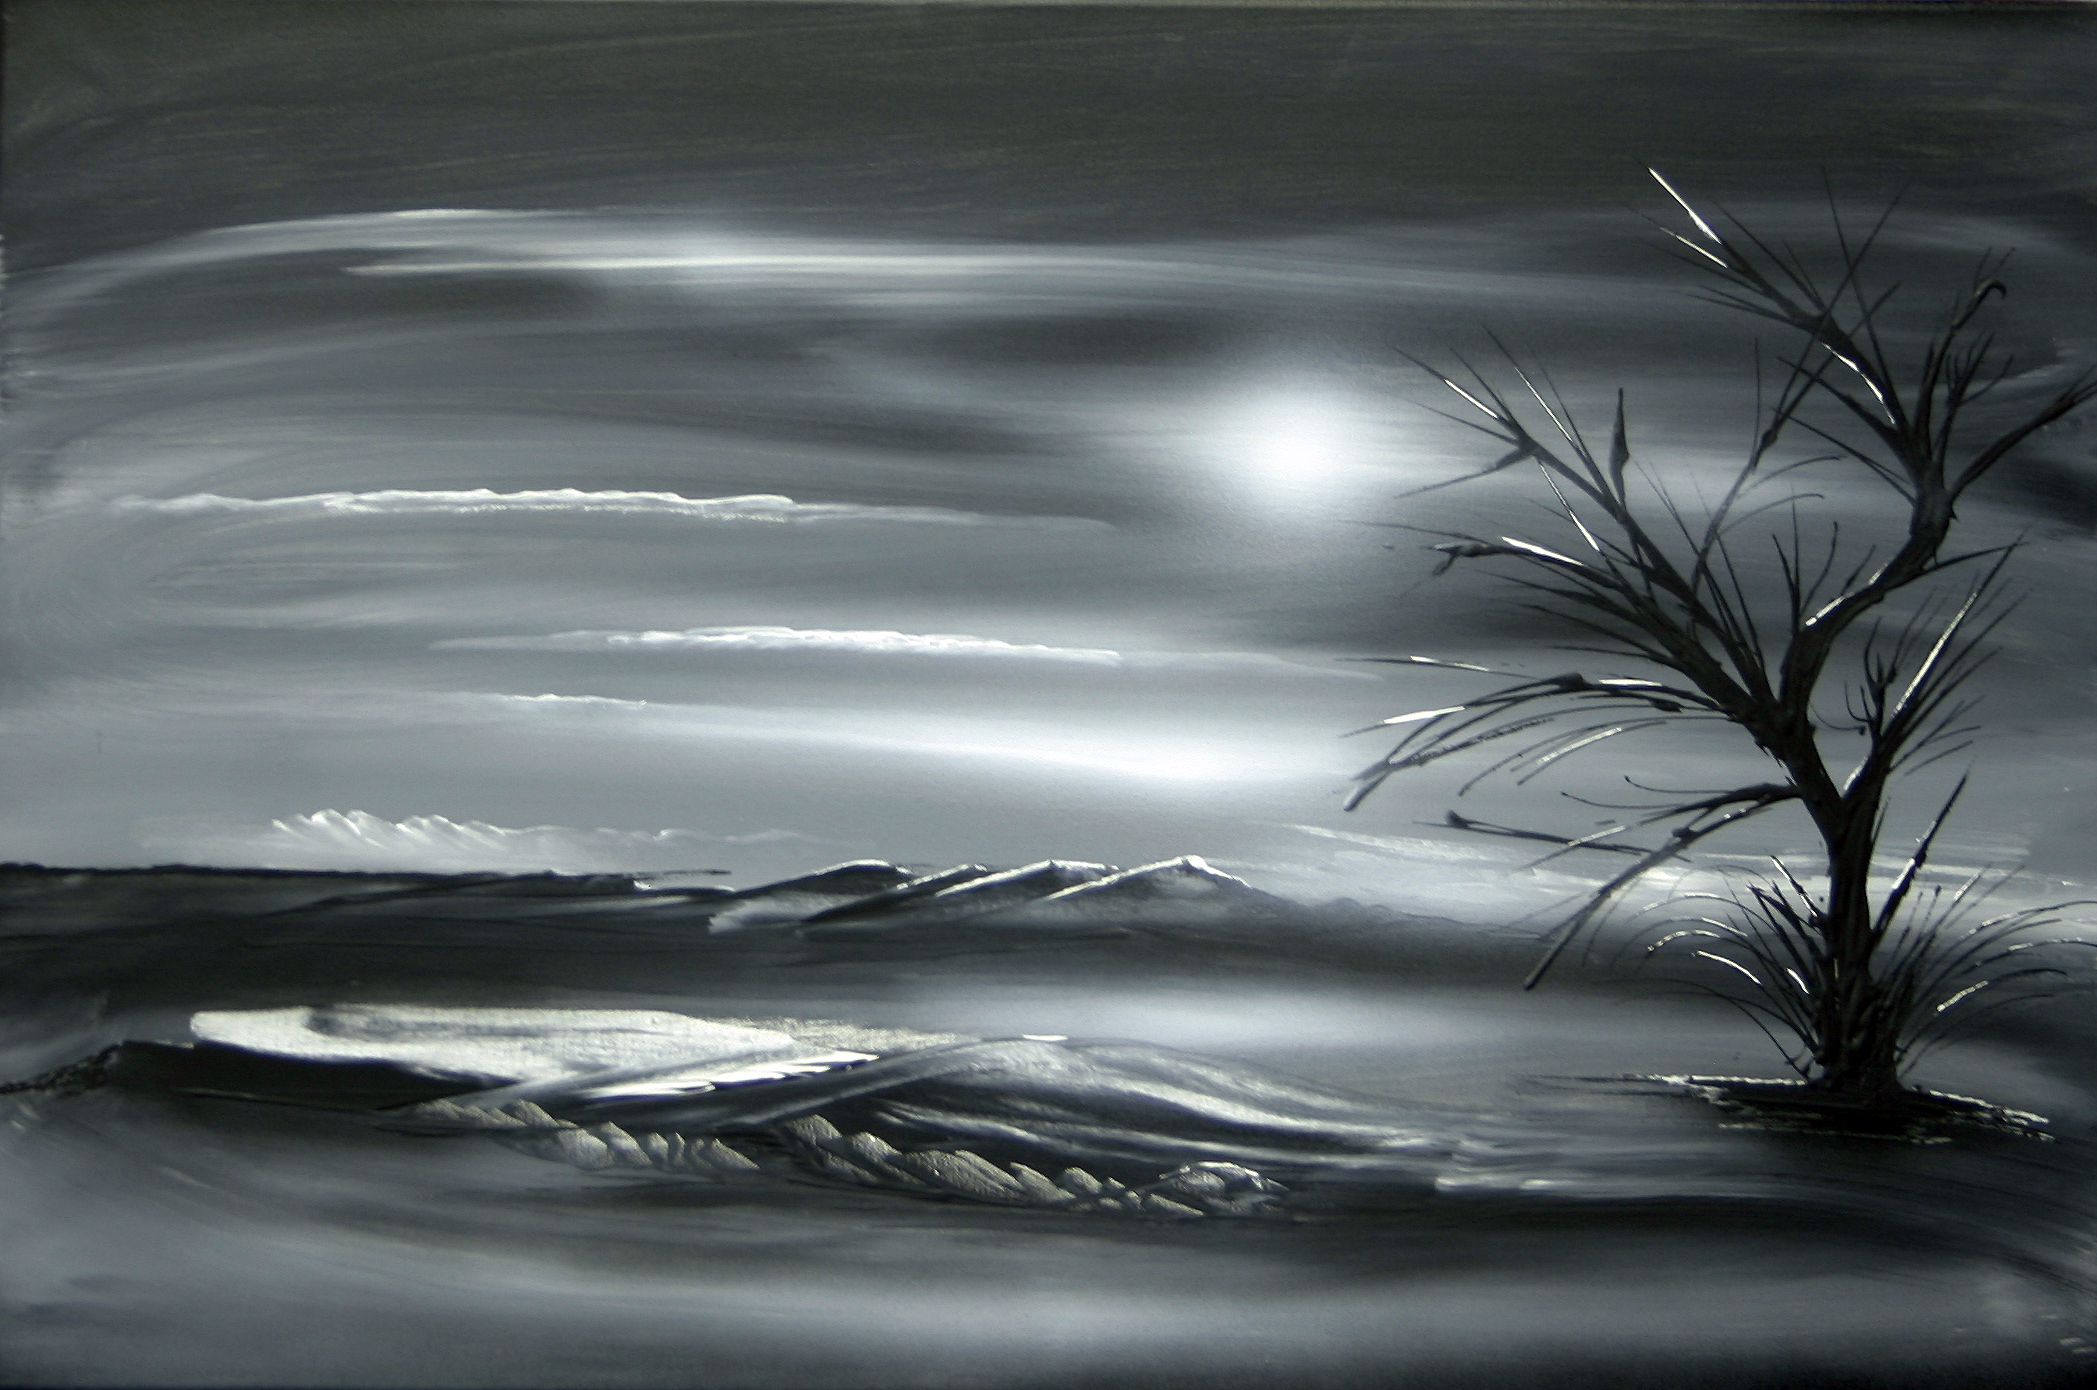 Art Gallery Paintings Black And White Landscape 408 Original Black